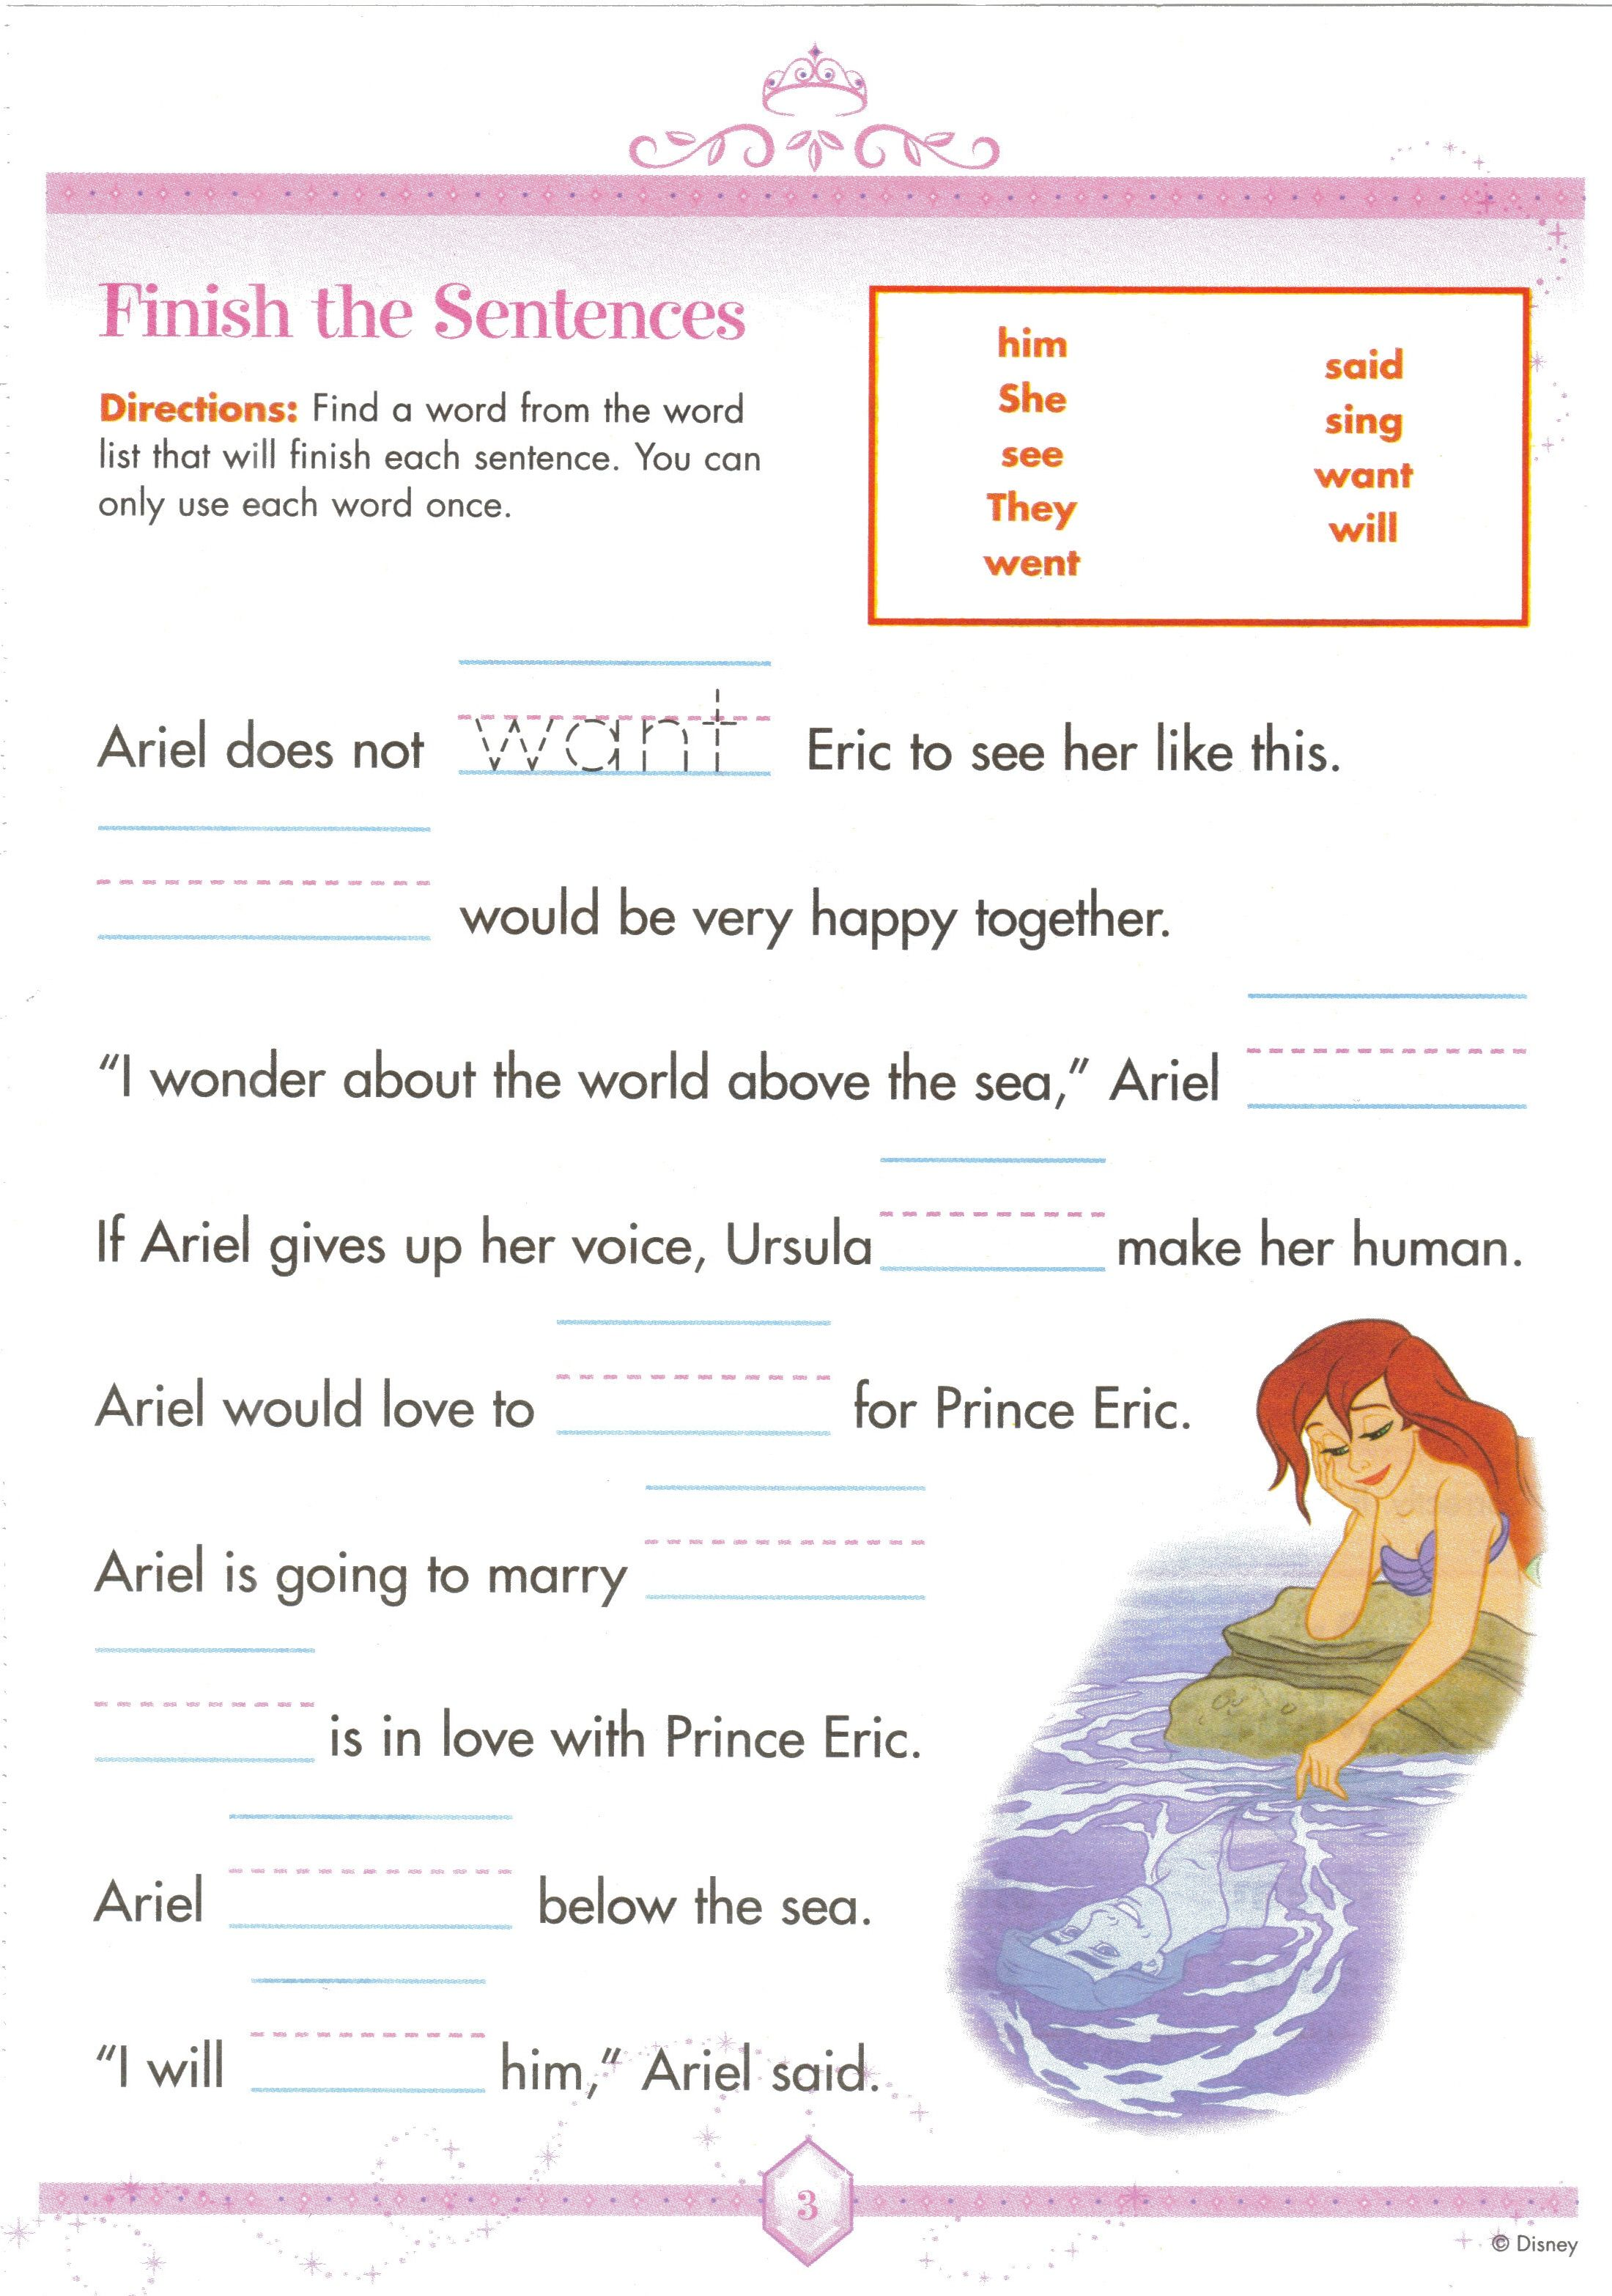 Weirdmailus  Seductive  Images About Worksheets On Pinterest  Fun Facts For Kids  With Likable  Images About Worksheets On Pinterest  Fun Facts For Kids Earth Day Worksheets And Jungles With Beautiful Worksheet On Weather Also Adding Mixed Fraction Worksheets In Addition D Shape Matching Worksheet And Free Economics Worksheets As Well As Canadian Coins Worksheets Additionally Measuring Capacity Worksheet From Pinterestcom With Weirdmailus  Likable  Images About Worksheets On Pinterest  Fun Facts For Kids  With Beautiful  Images About Worksheets On Pinterest  Fun Facts For Kids Earth Day Worksheets And Jungles And Seductive Worksheet On Weather Also Adding Mixed Fraction Worksheets In Addition D Shape Matching Worksheet From Pinterestcom